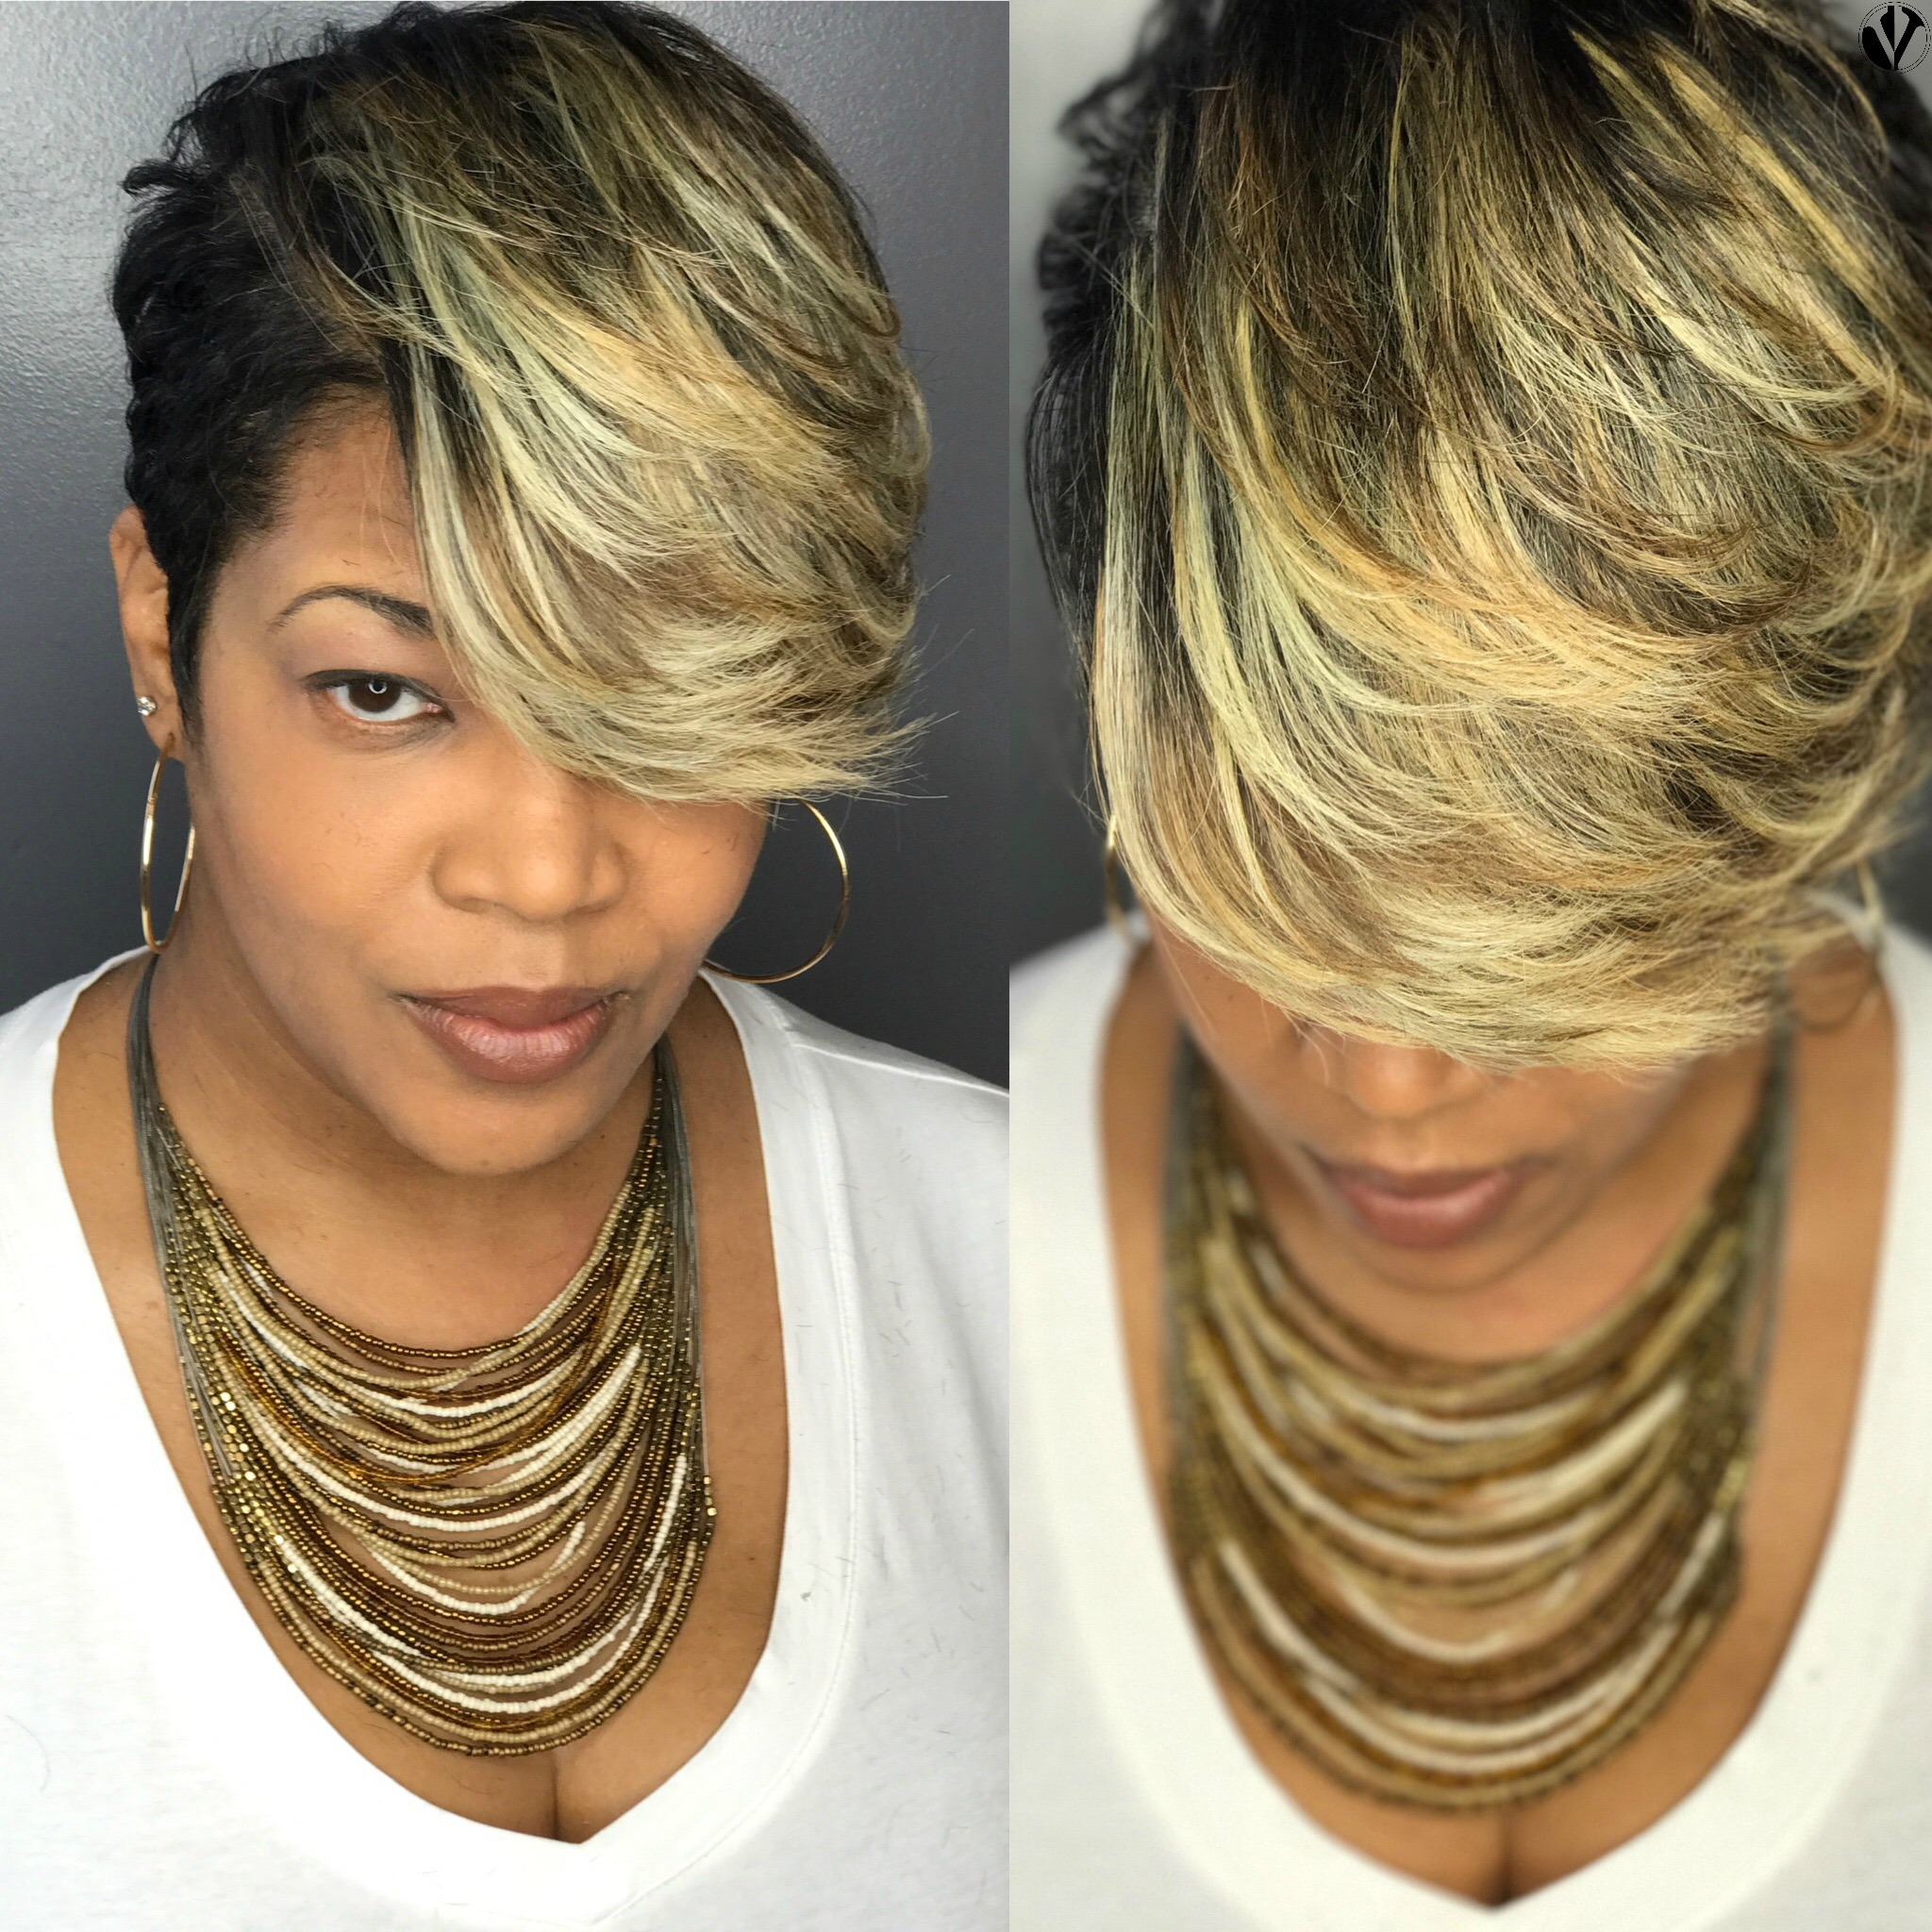 Toners help to achieve a dimensional blonde look